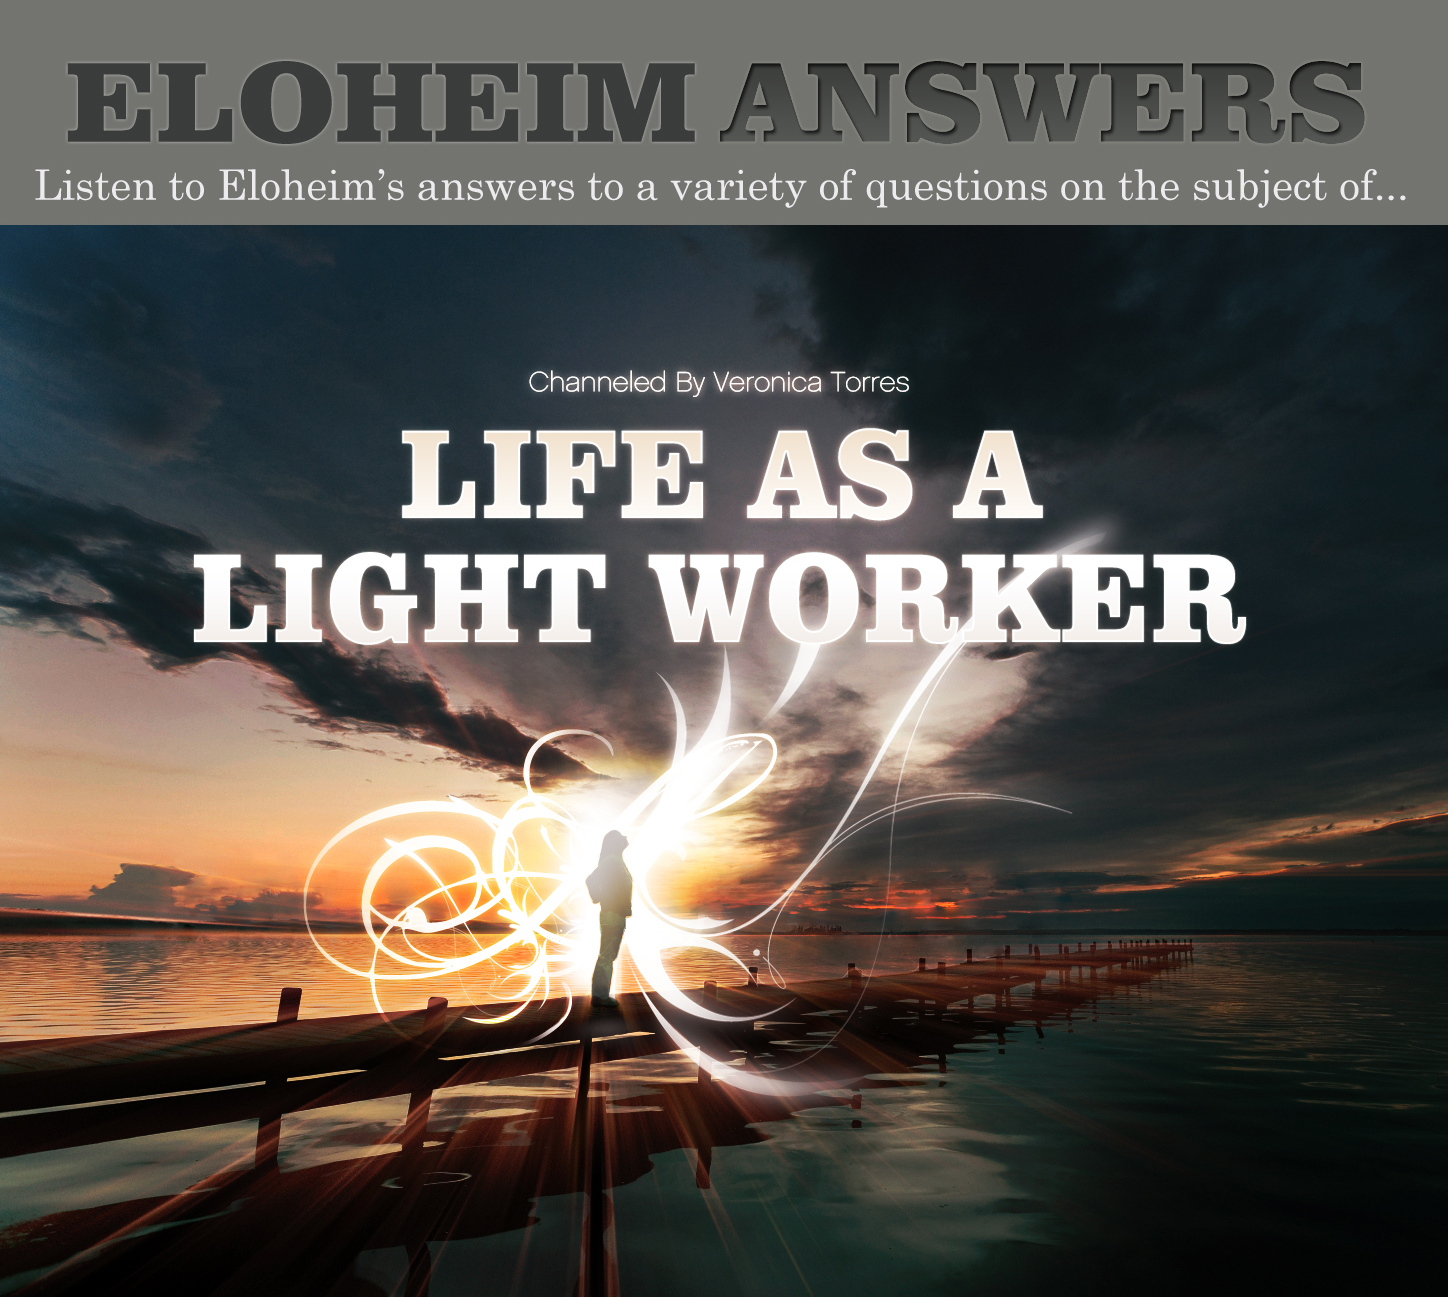 Listen to Eloheim's answers about life on the spiritual journey!